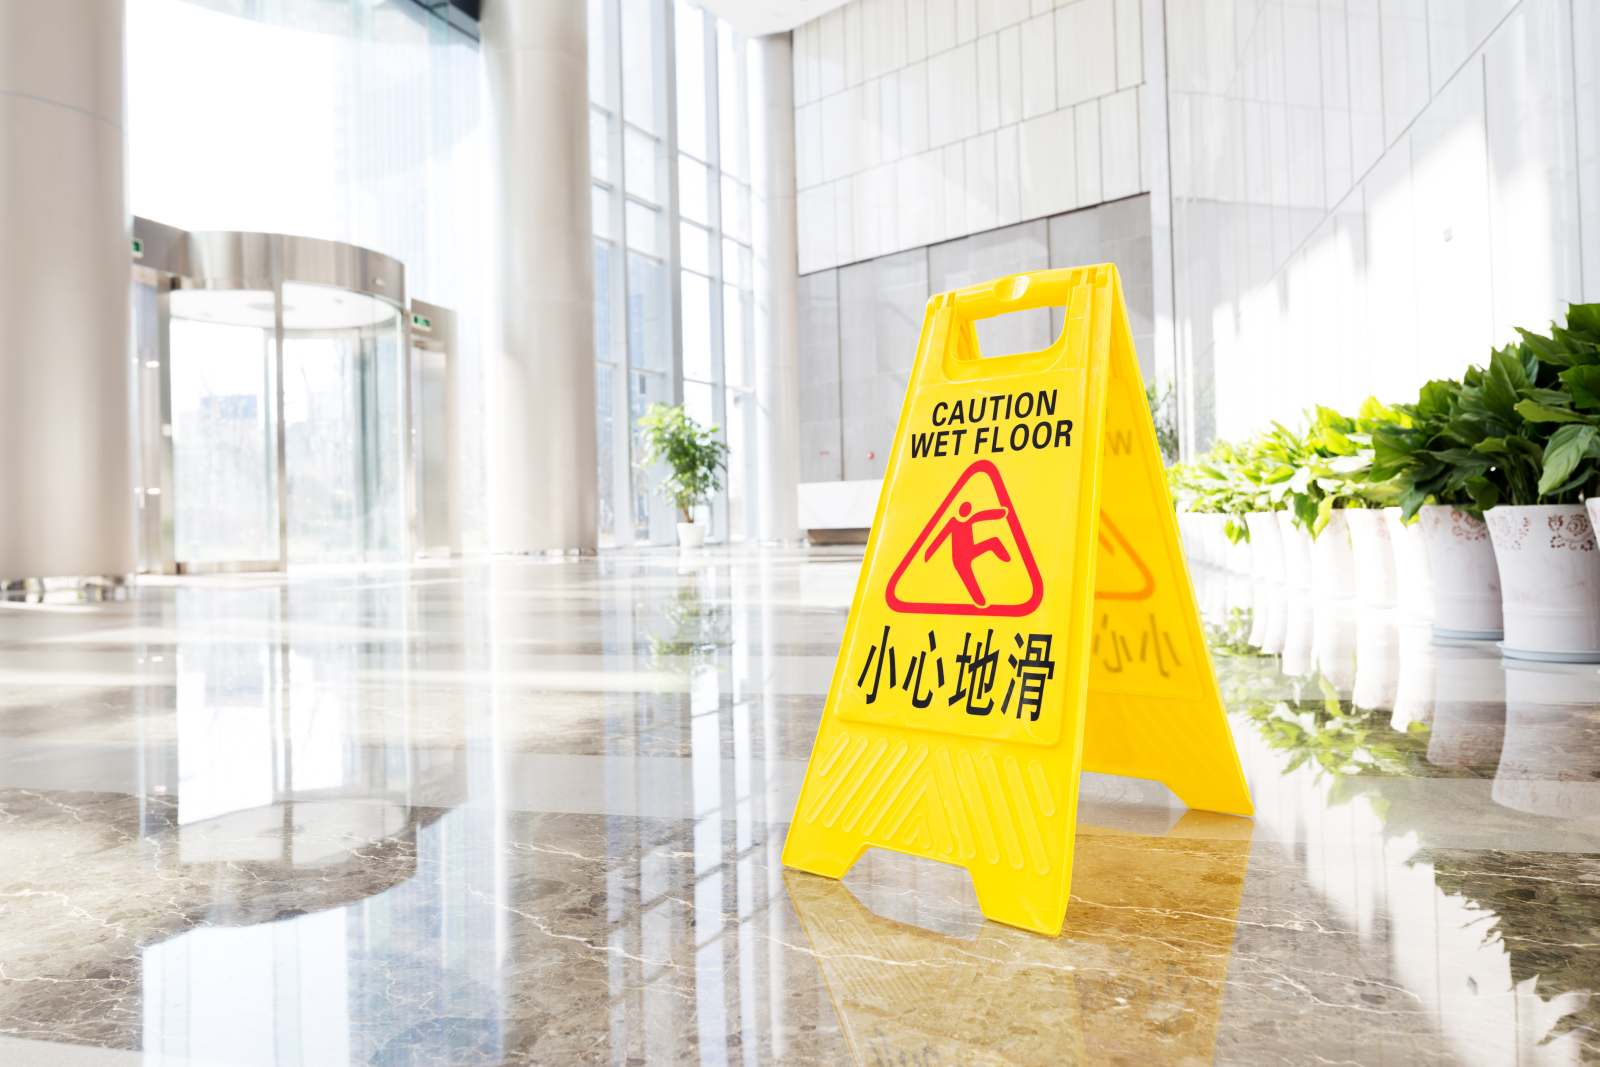 What we do kc grip our anti slip floor treatment is safe for any interior or exterior surface dailygadgetfo Image collections